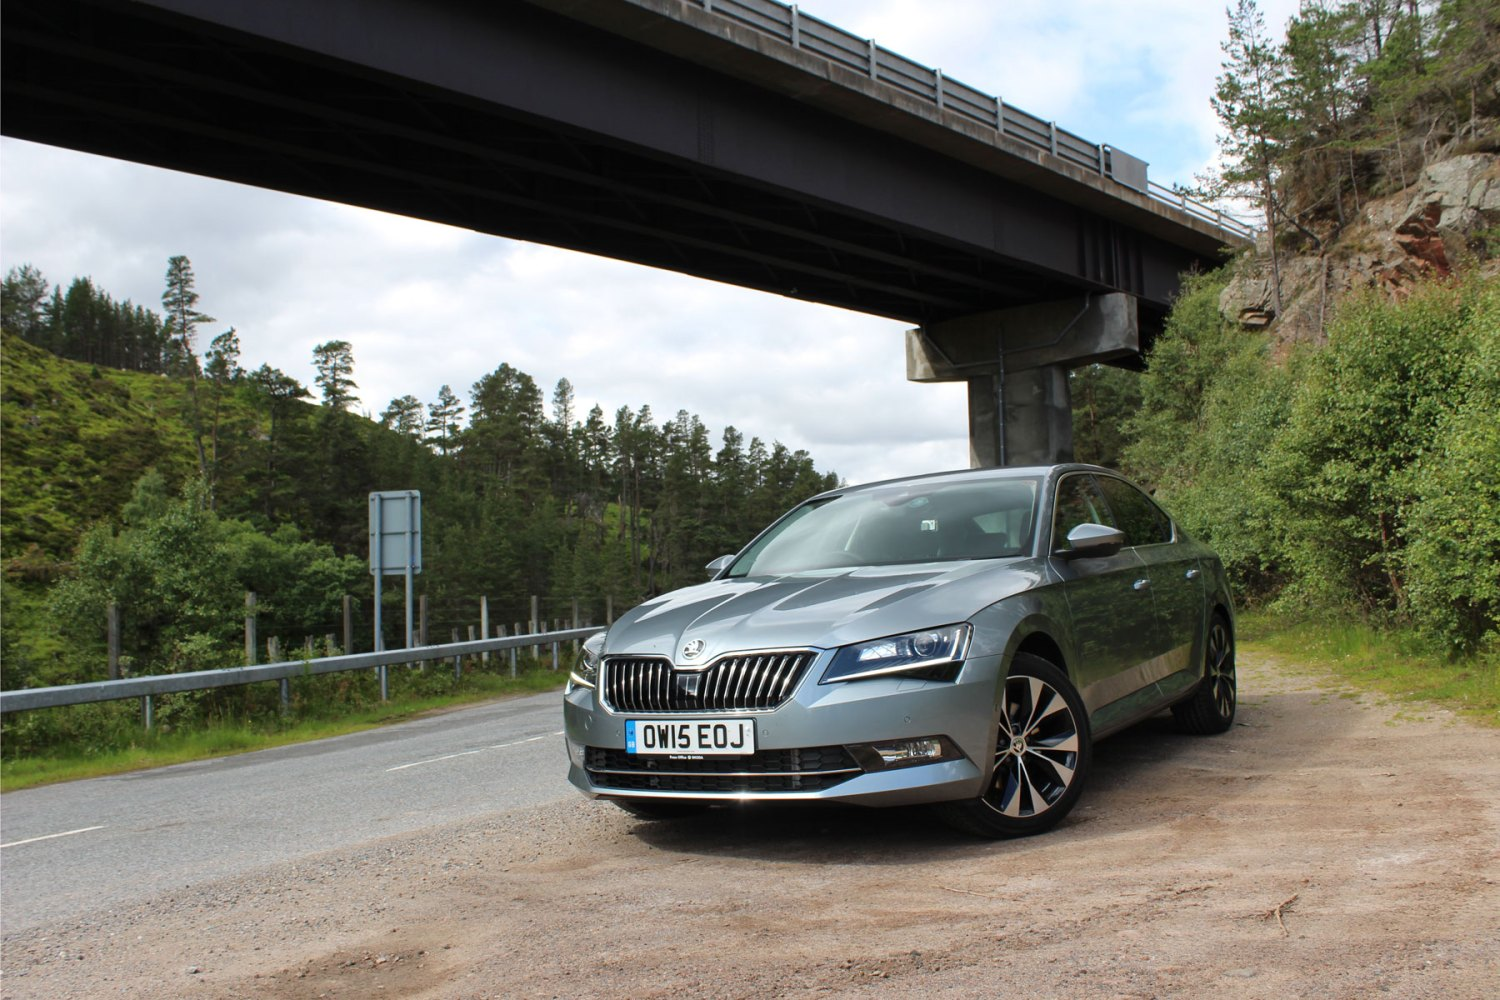 01_Skoda_Superb_Journey